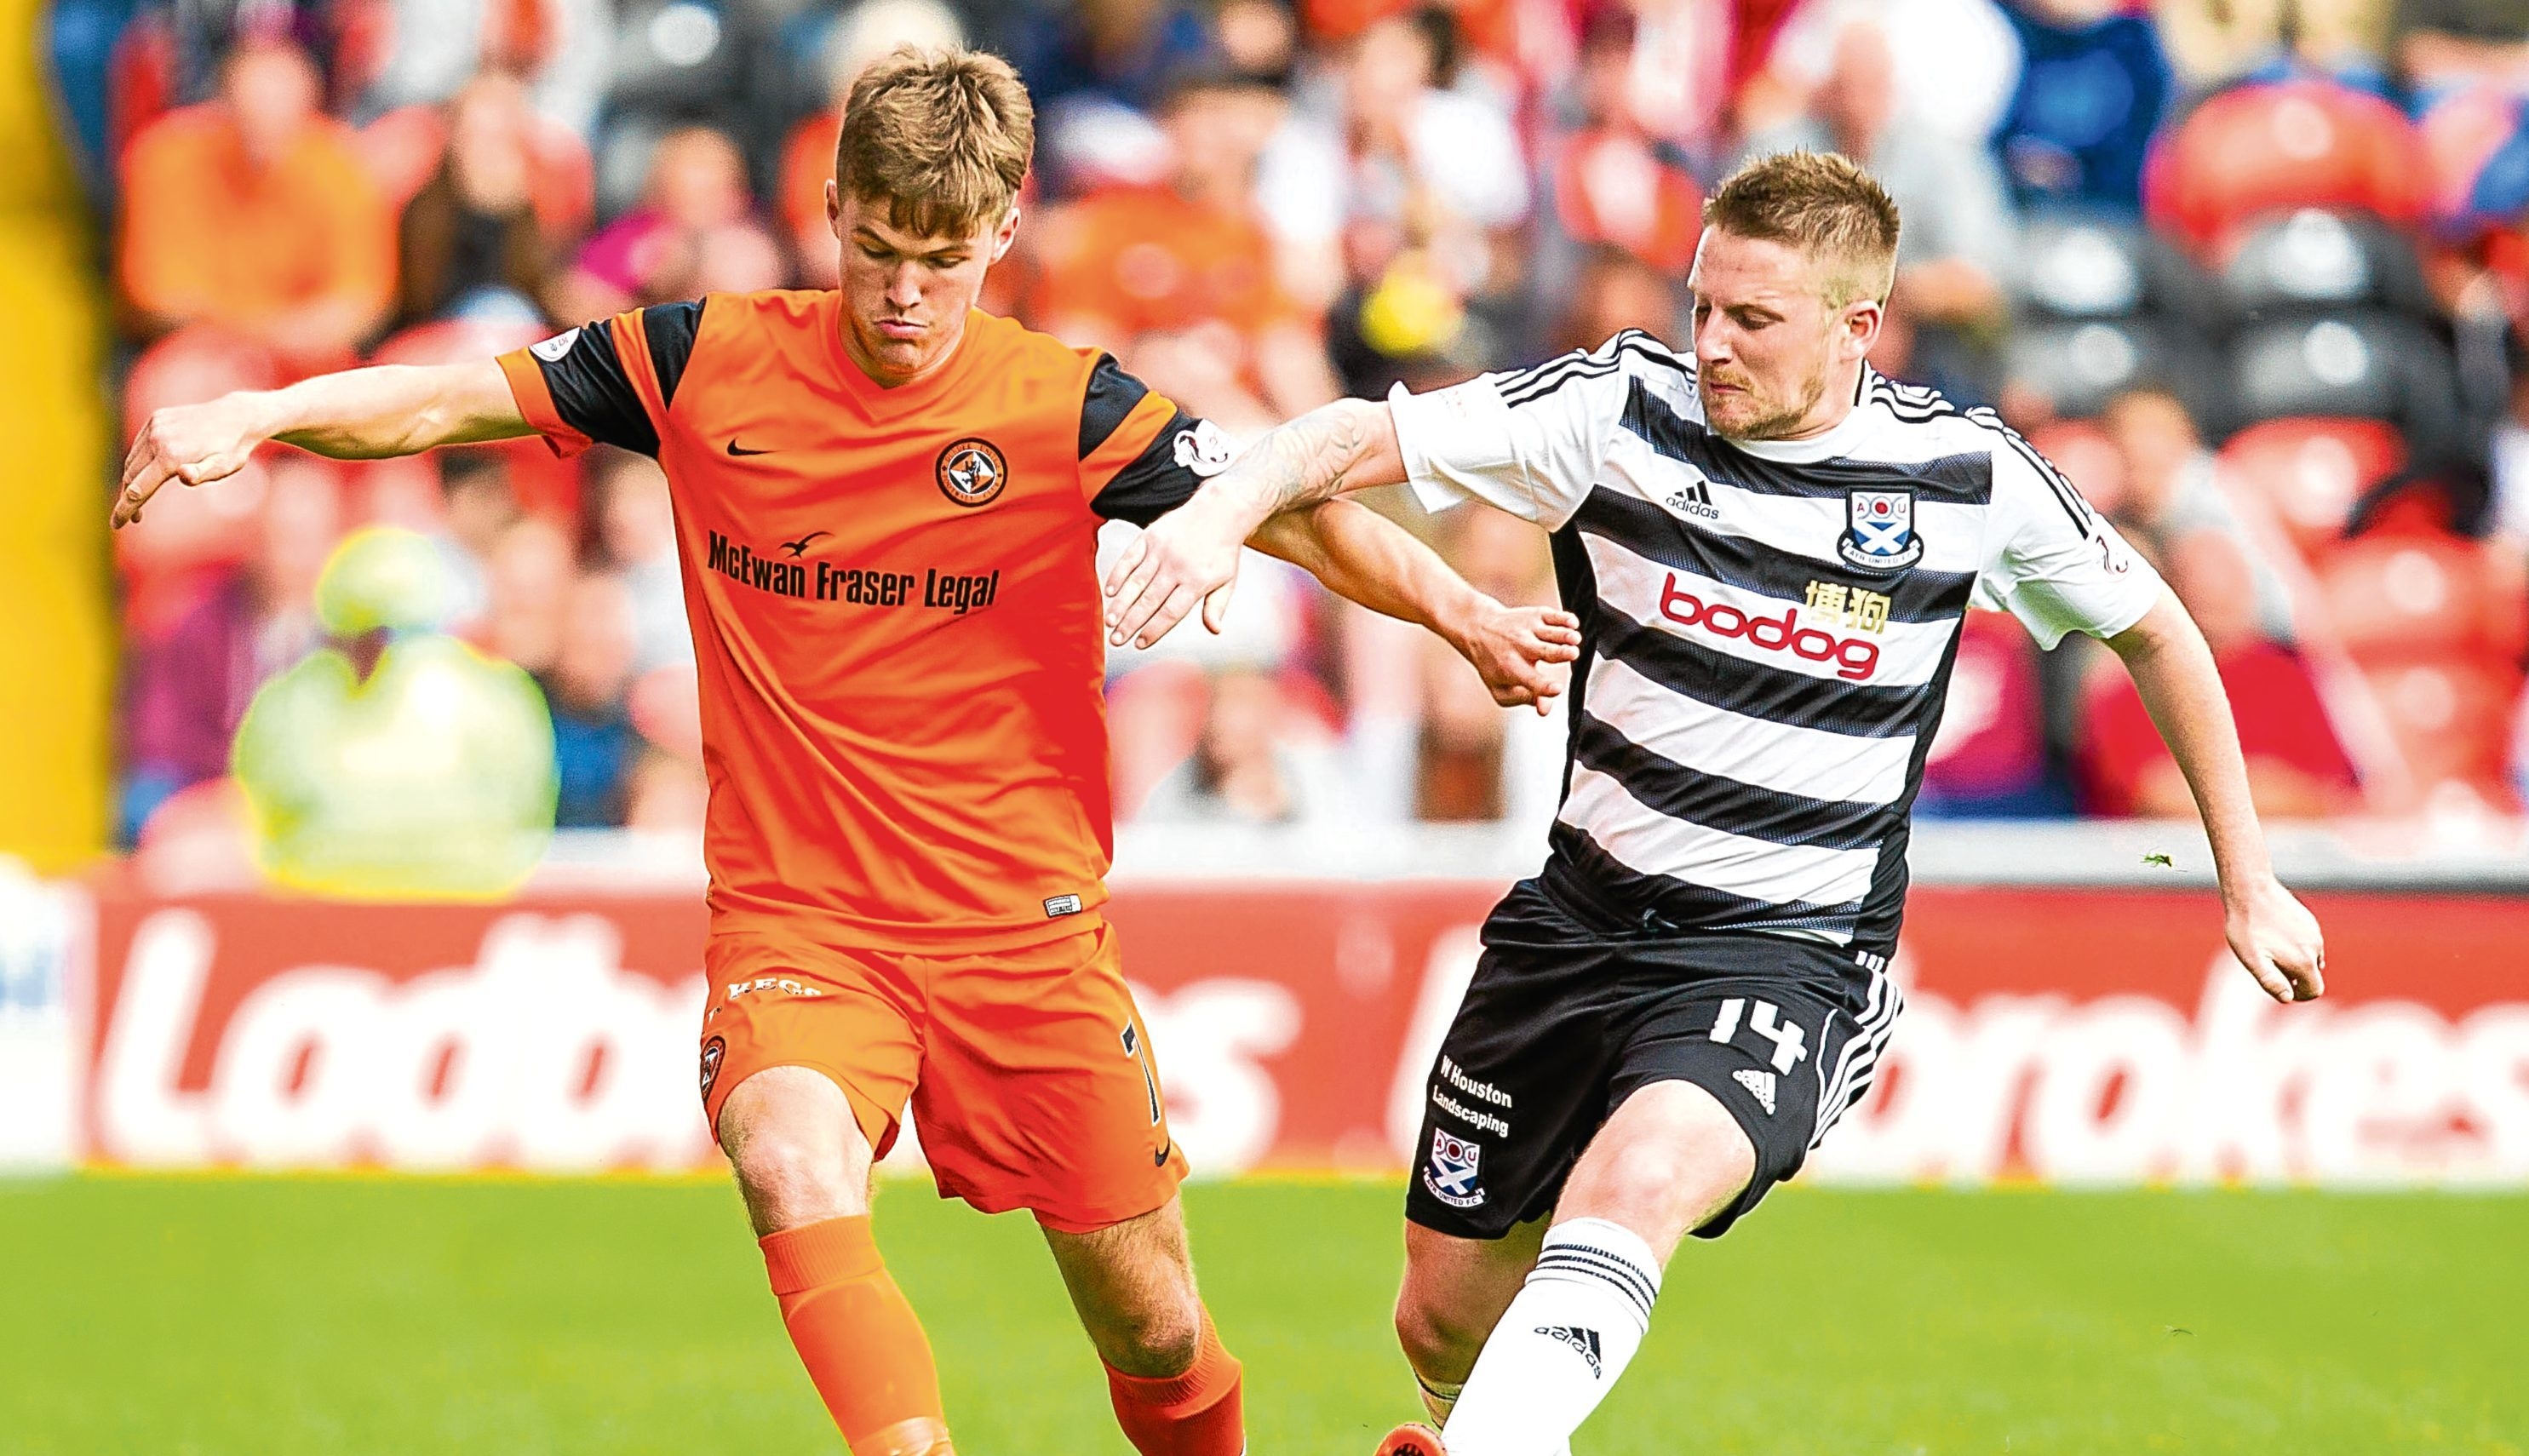 Substitute Blair Spittal battles for the ball with Ayr United's Paul Cairney as Dundee United record their first league win in the Championship.